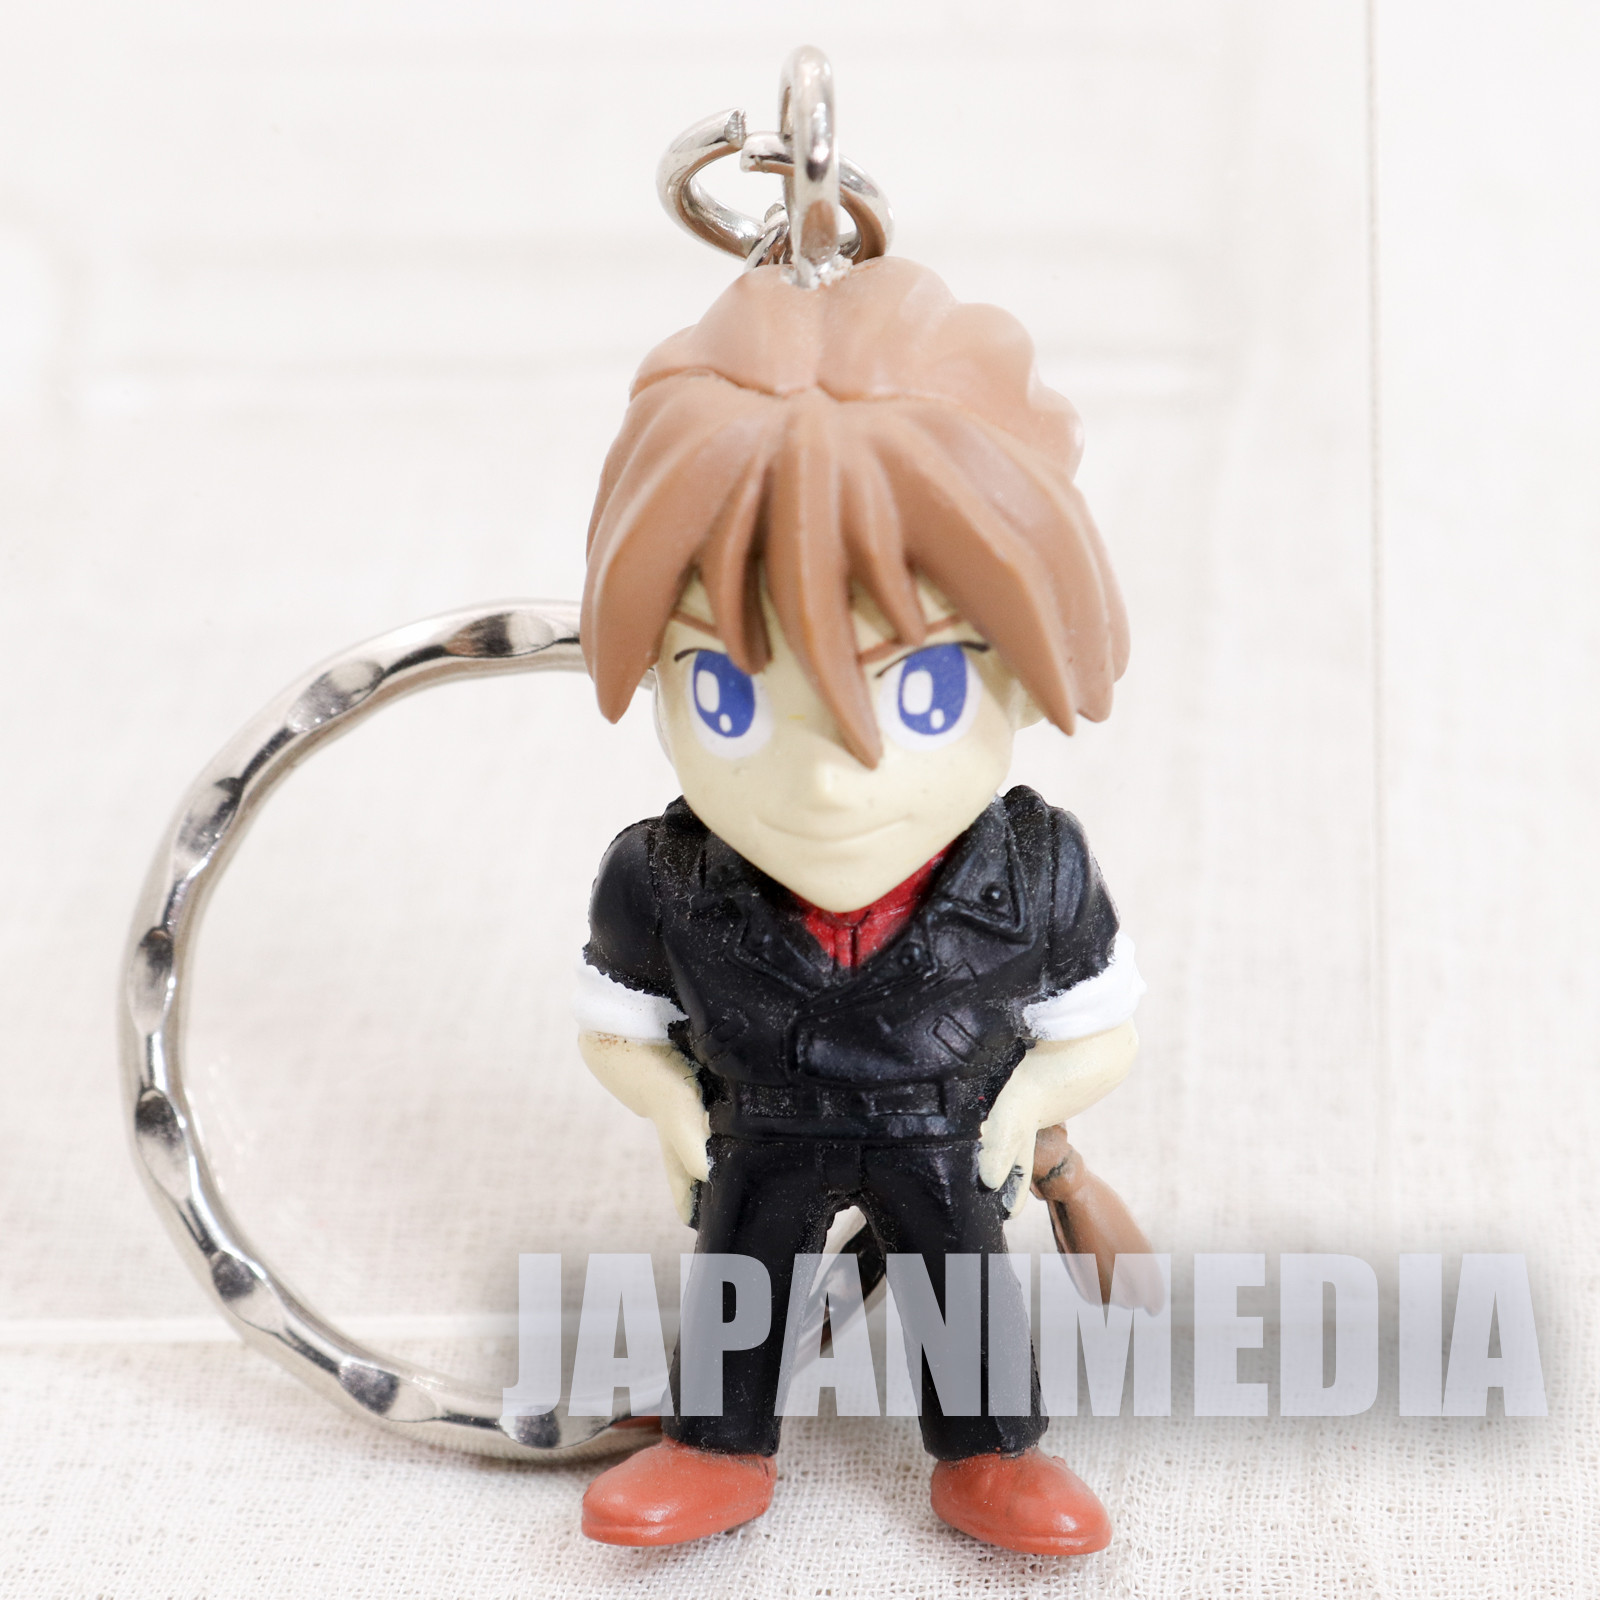 Gundam Wing Duo Maxwell Figure Key Chain - Endless Waltz - JAPAN ANIME